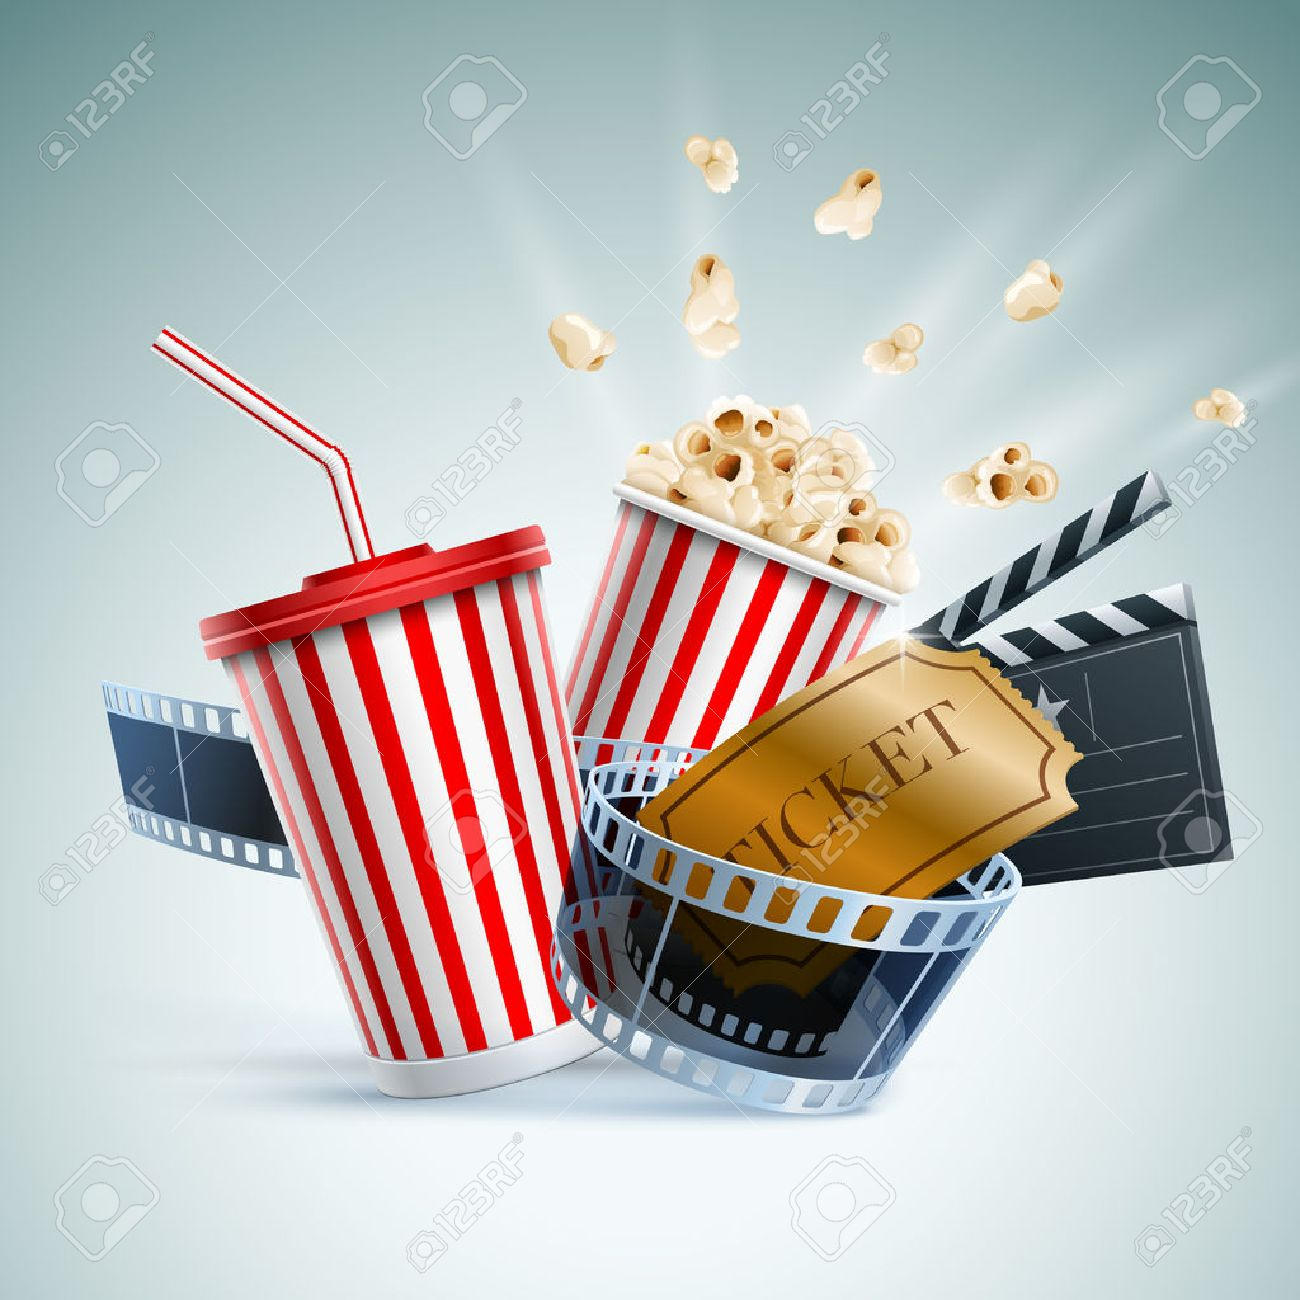 Popcorn box, disposable cup for beverages with straw, film strip, clapper board and ticket. Cinema Poster Design Template. Detailed vector illustration. - 31396468